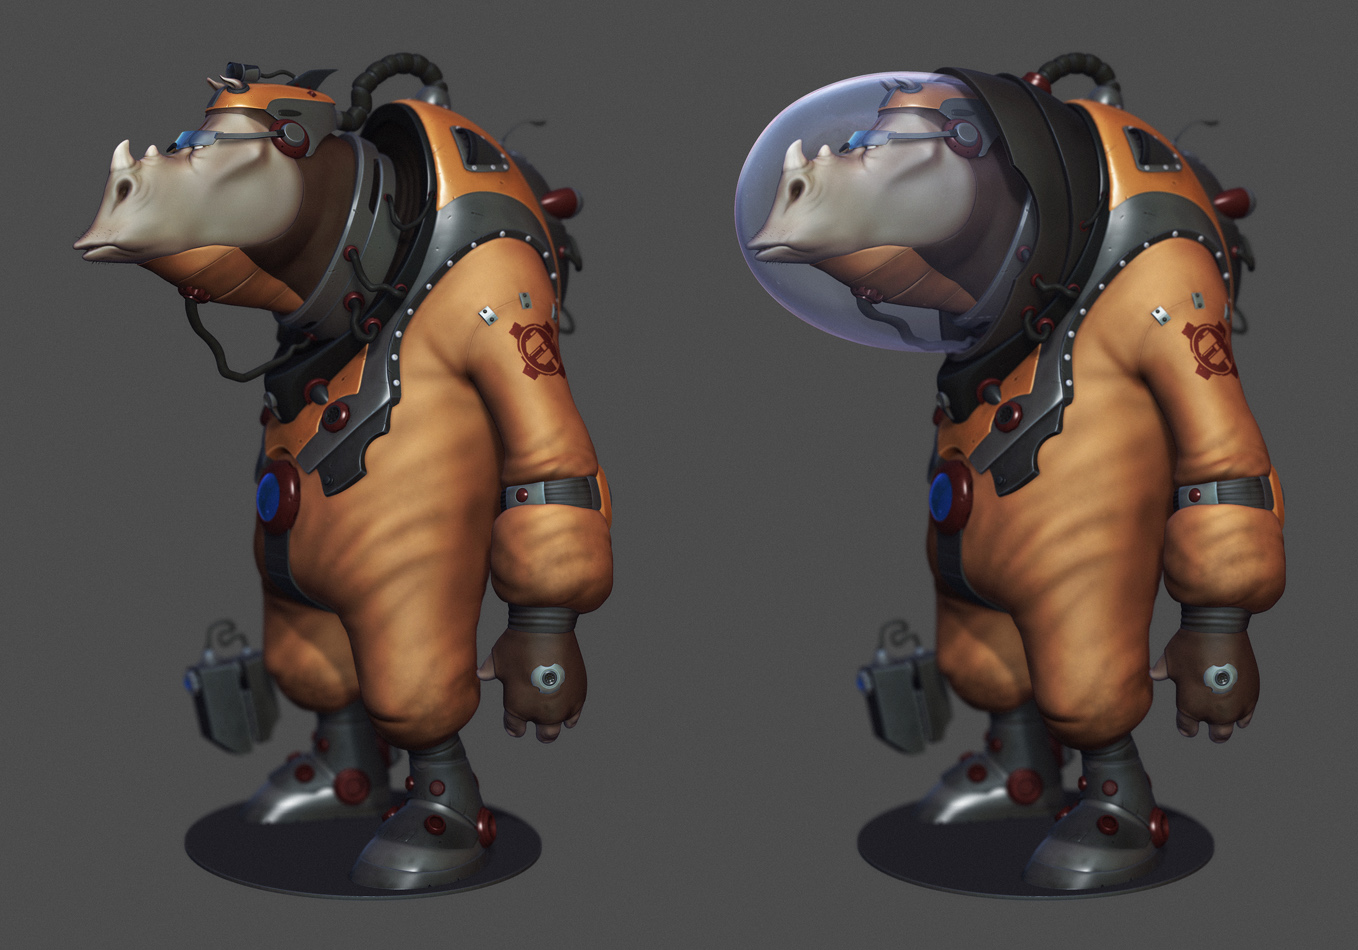 rhino_final_with_and_without_helmet.jpg